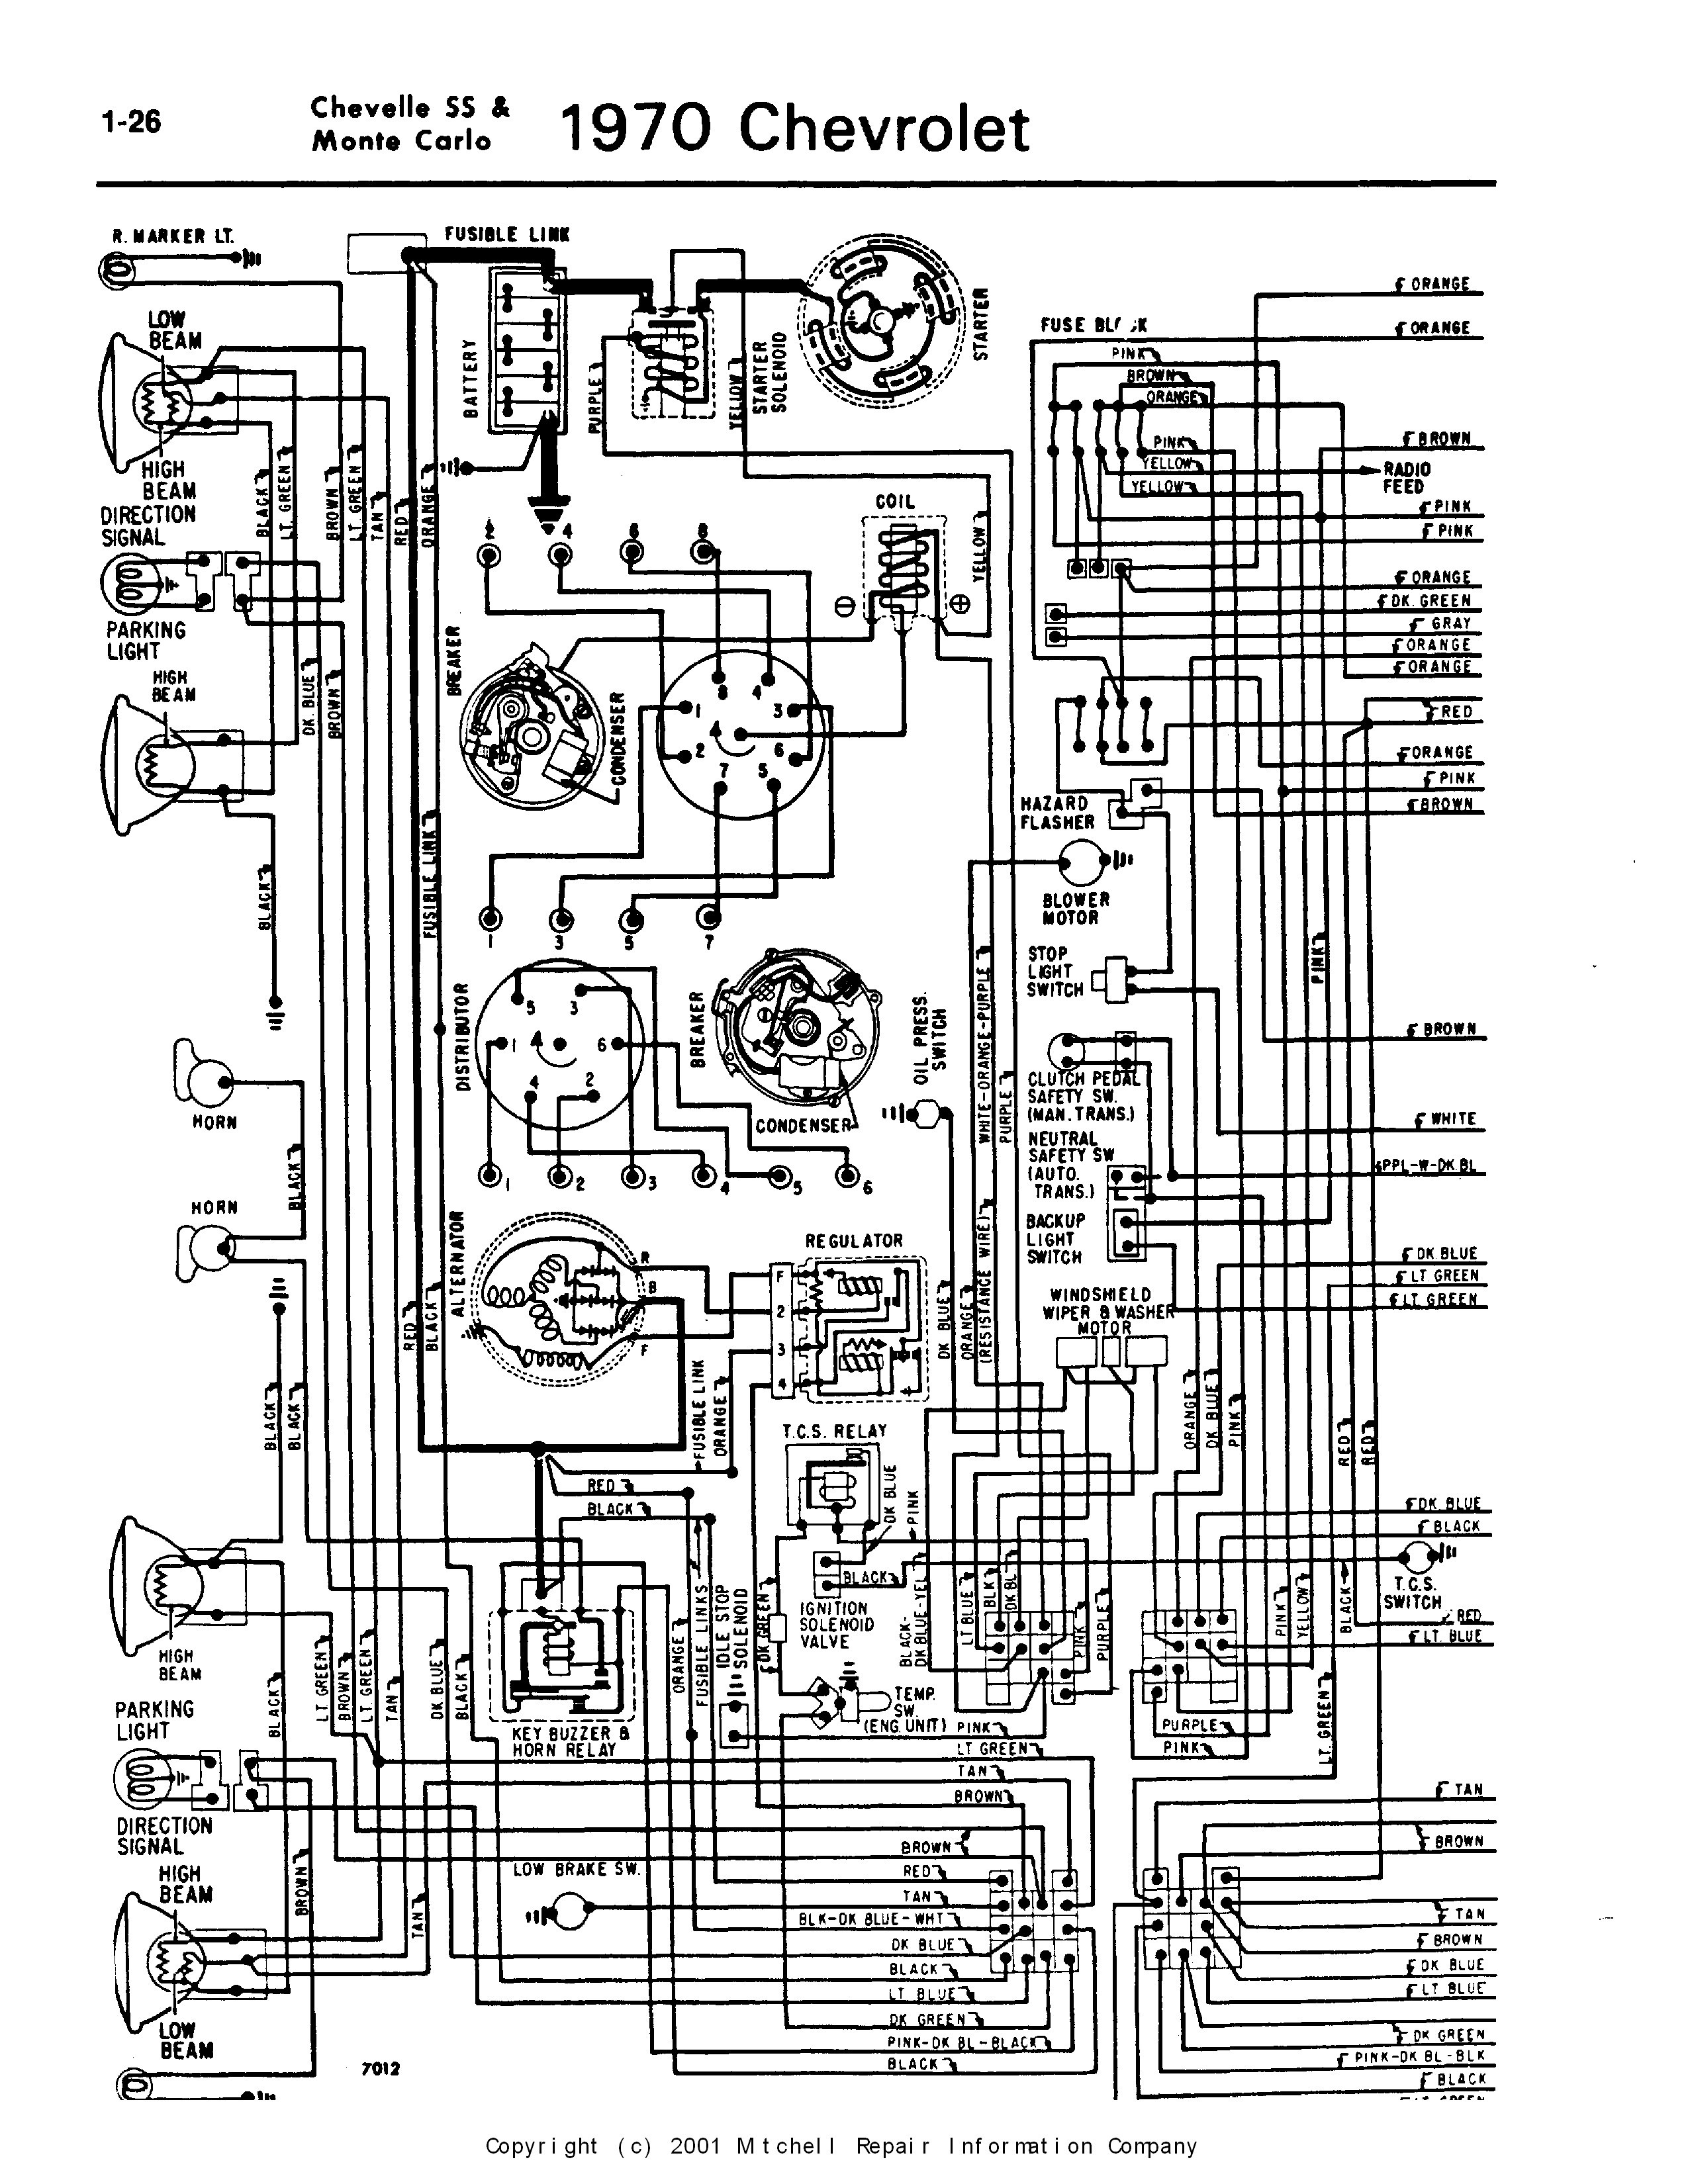 1969 chevelle wiring diagram | free wiring diagram 1965 ford ignition switch diagram #7